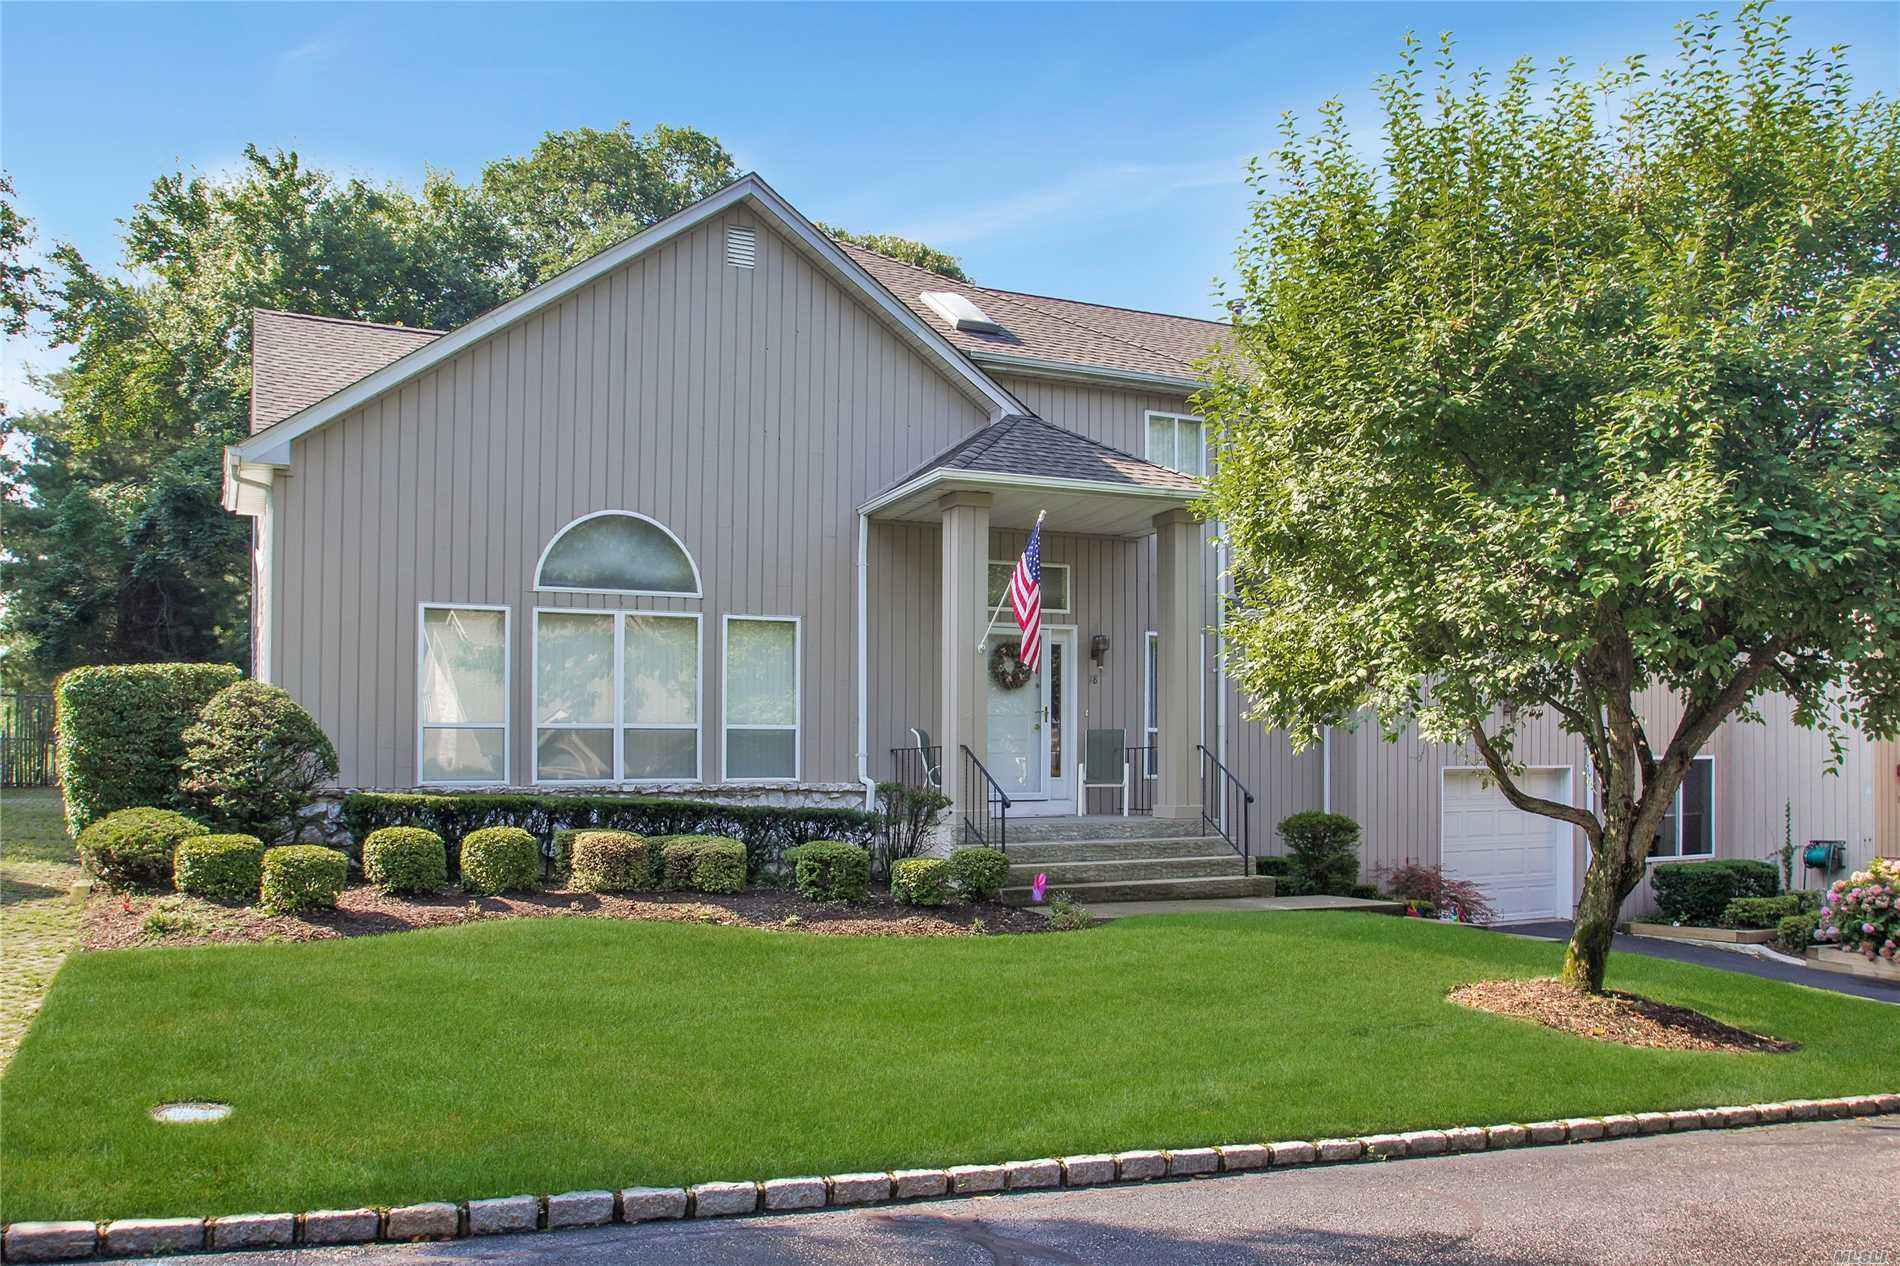 Property for sale at 18 Stone Gate Ct, Smithtown,  NY 11787